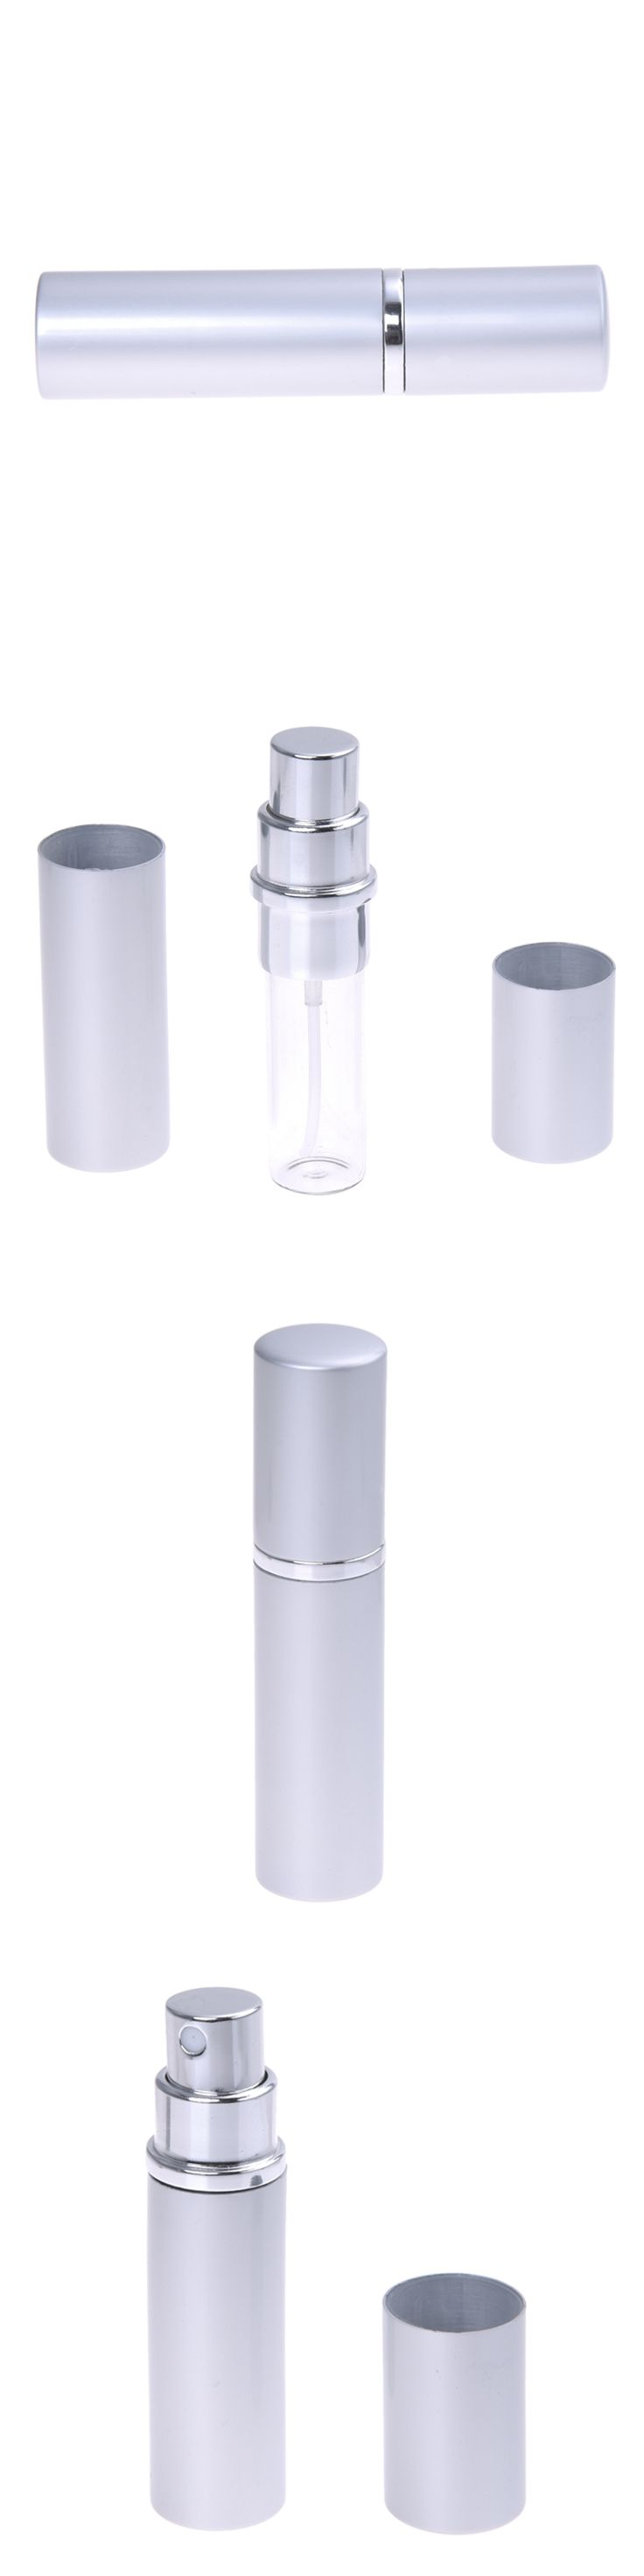 5ml Silver Travel Perfume Aftershave Atomizer Atomiser Spray Bottle